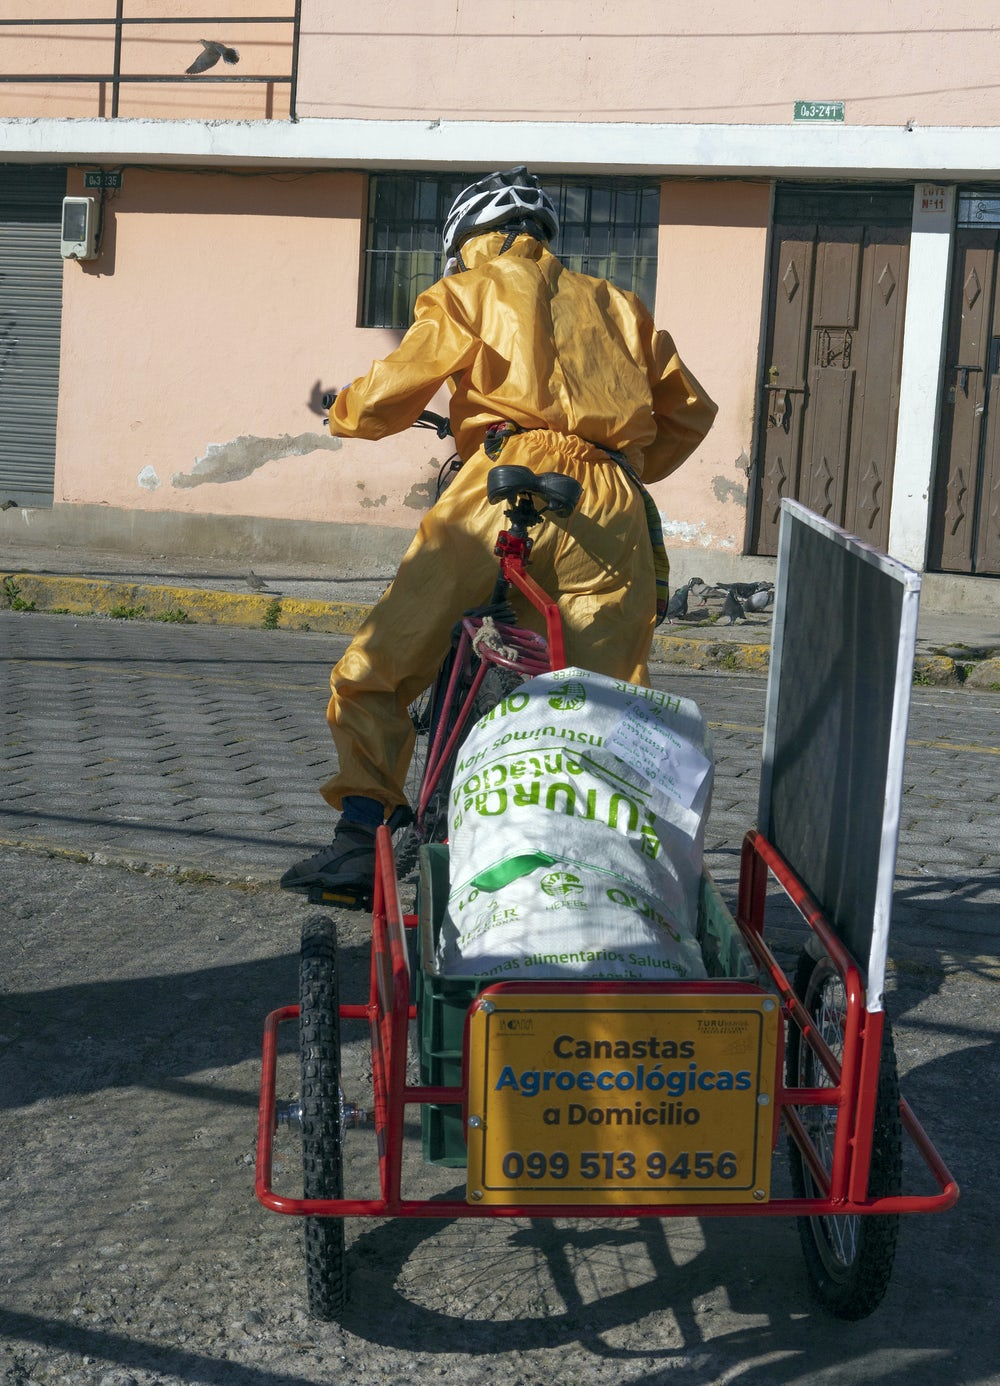 A man in wearing protective equipment delivers bags of produce by bicycle.